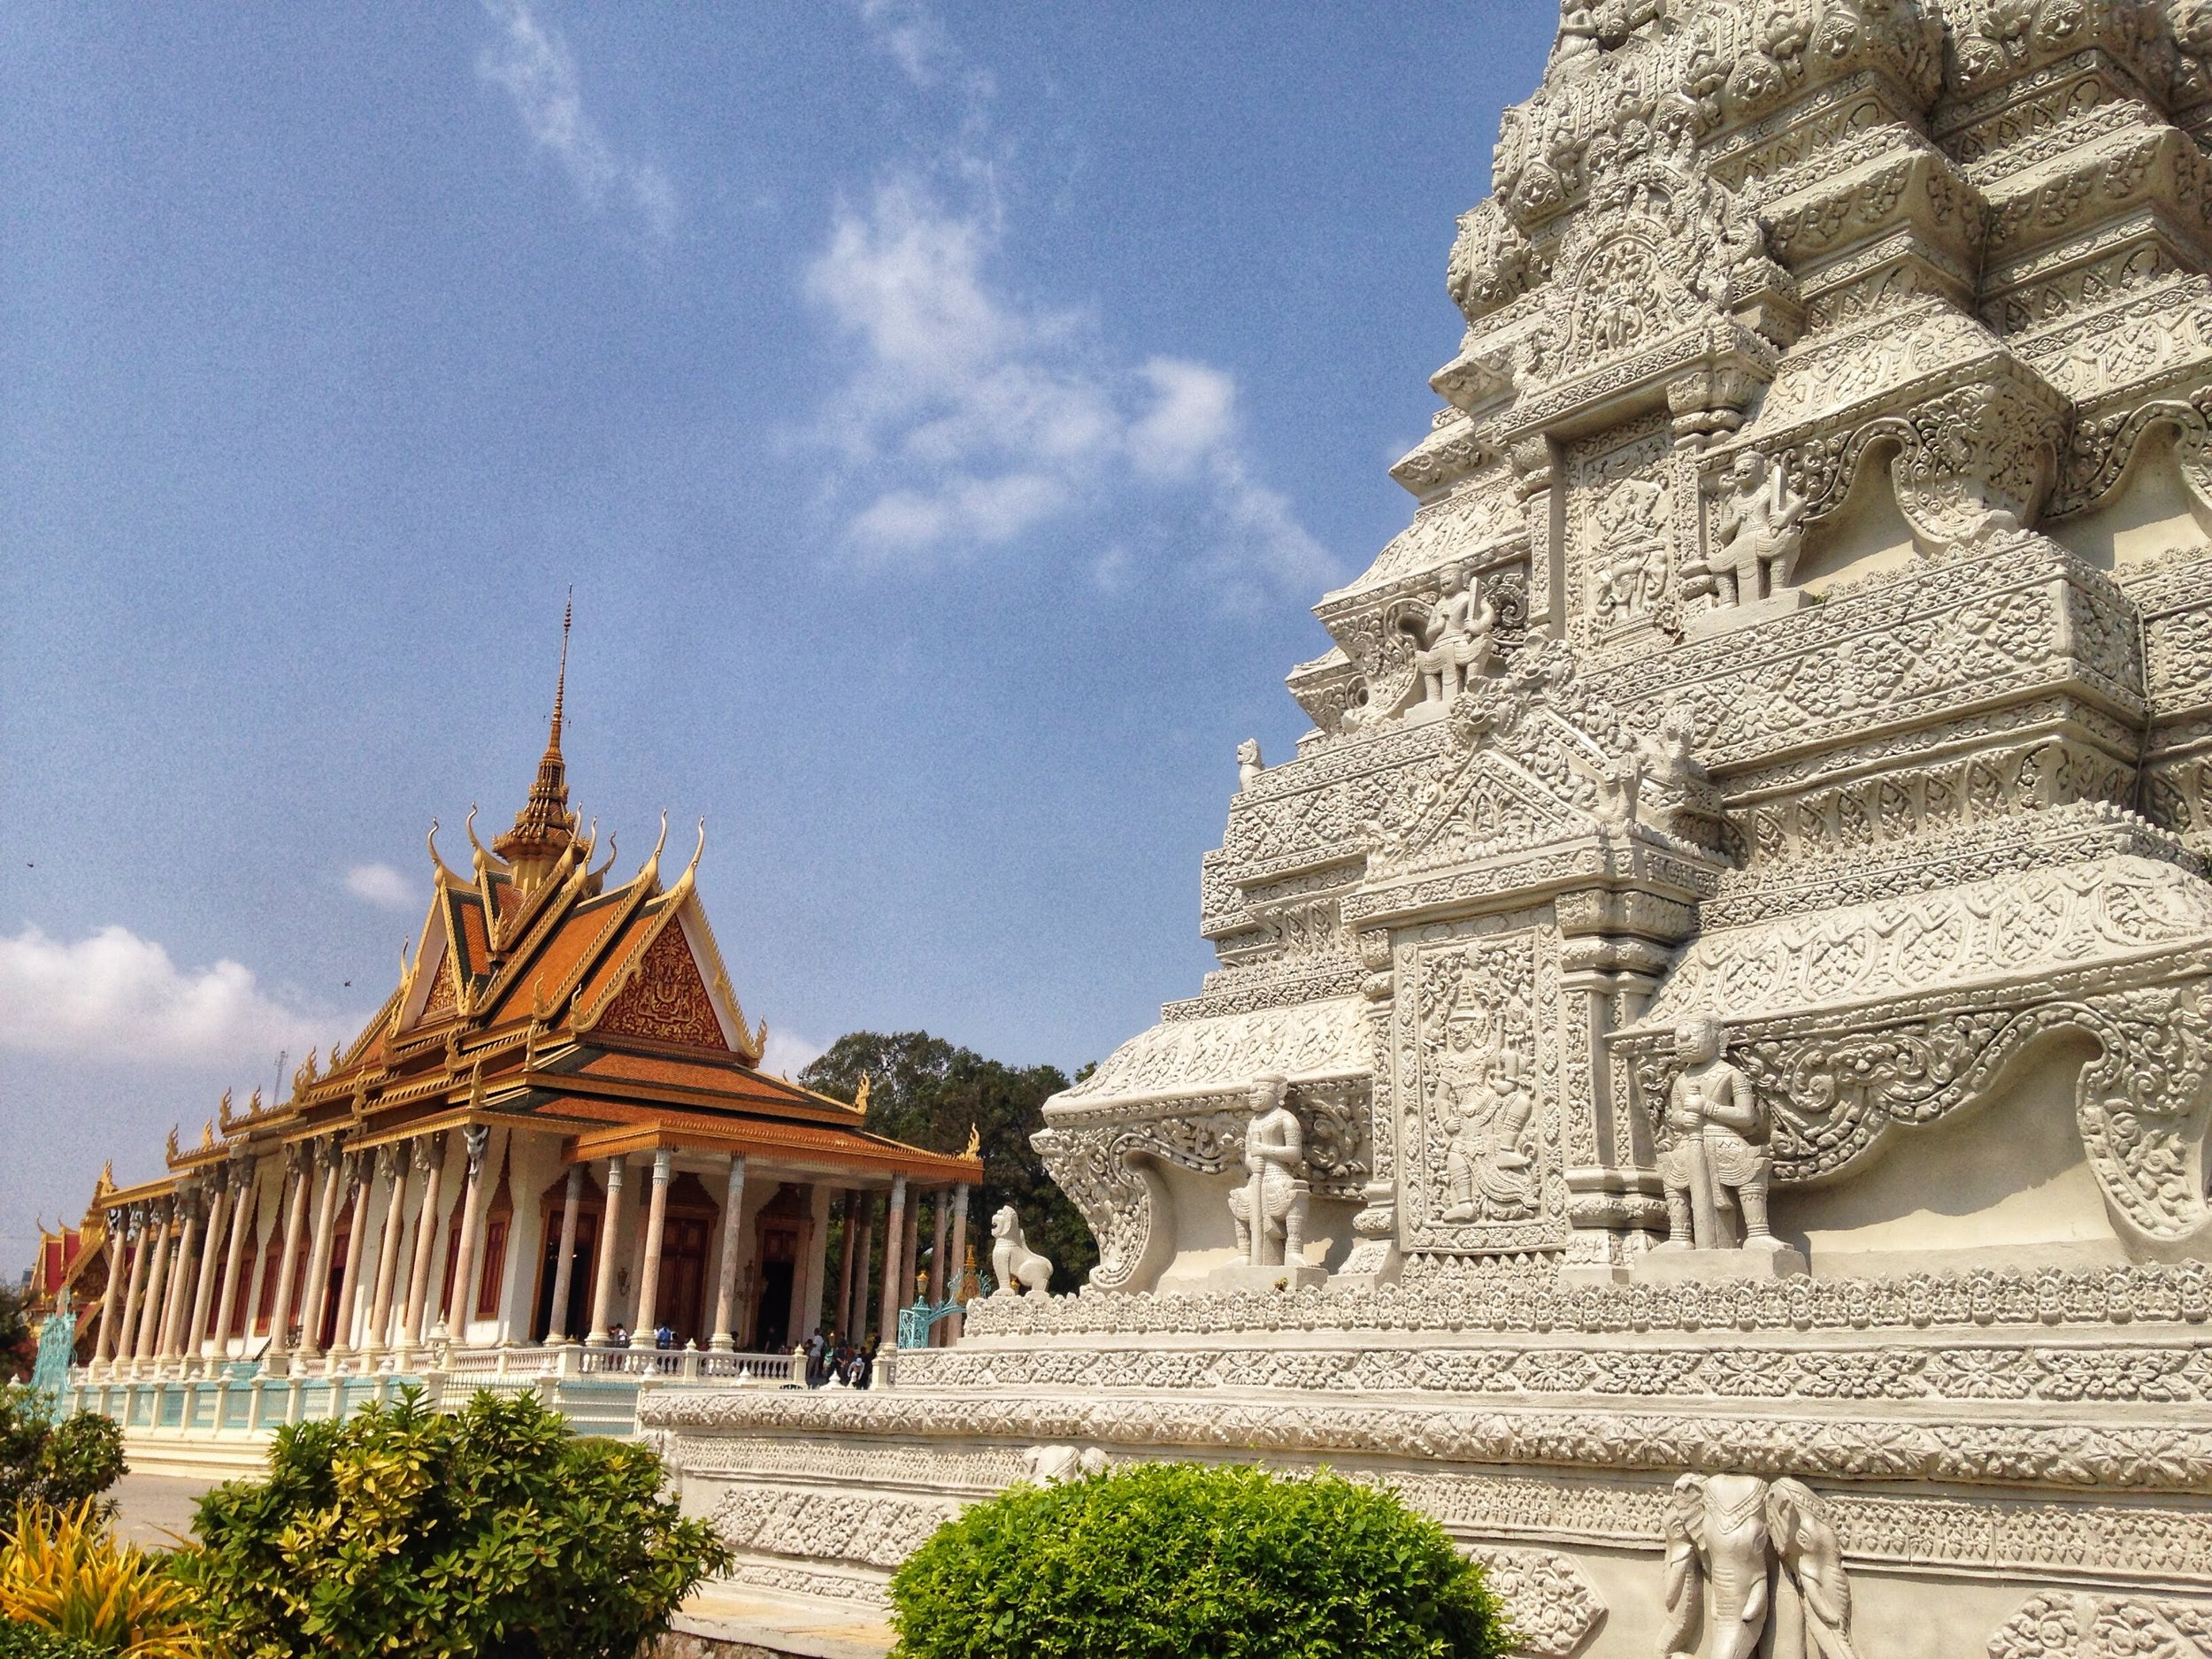 The Silver Pagoda, also called the Temple of the Emerald-Crystal Buddha